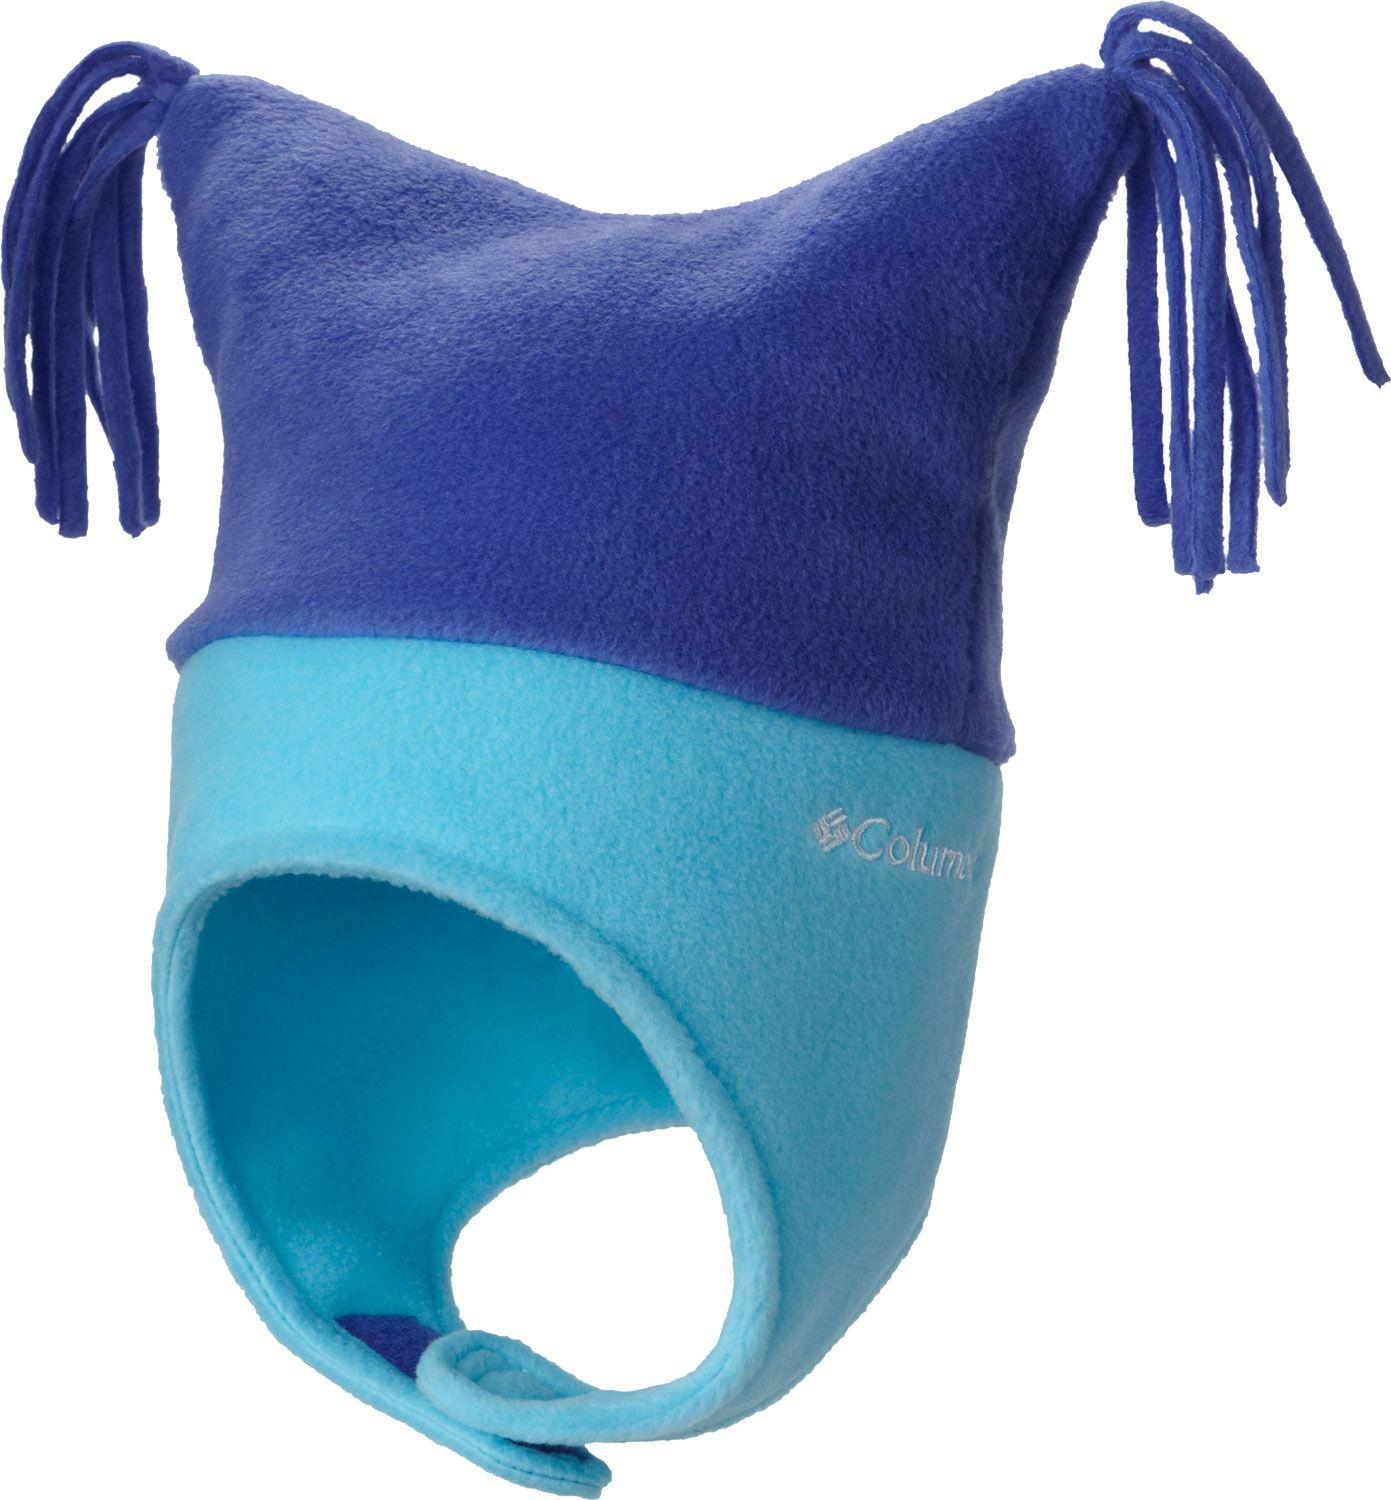 b1aba93d5ad Lyst - Columbia Toddler Pigtail Hat in Blue